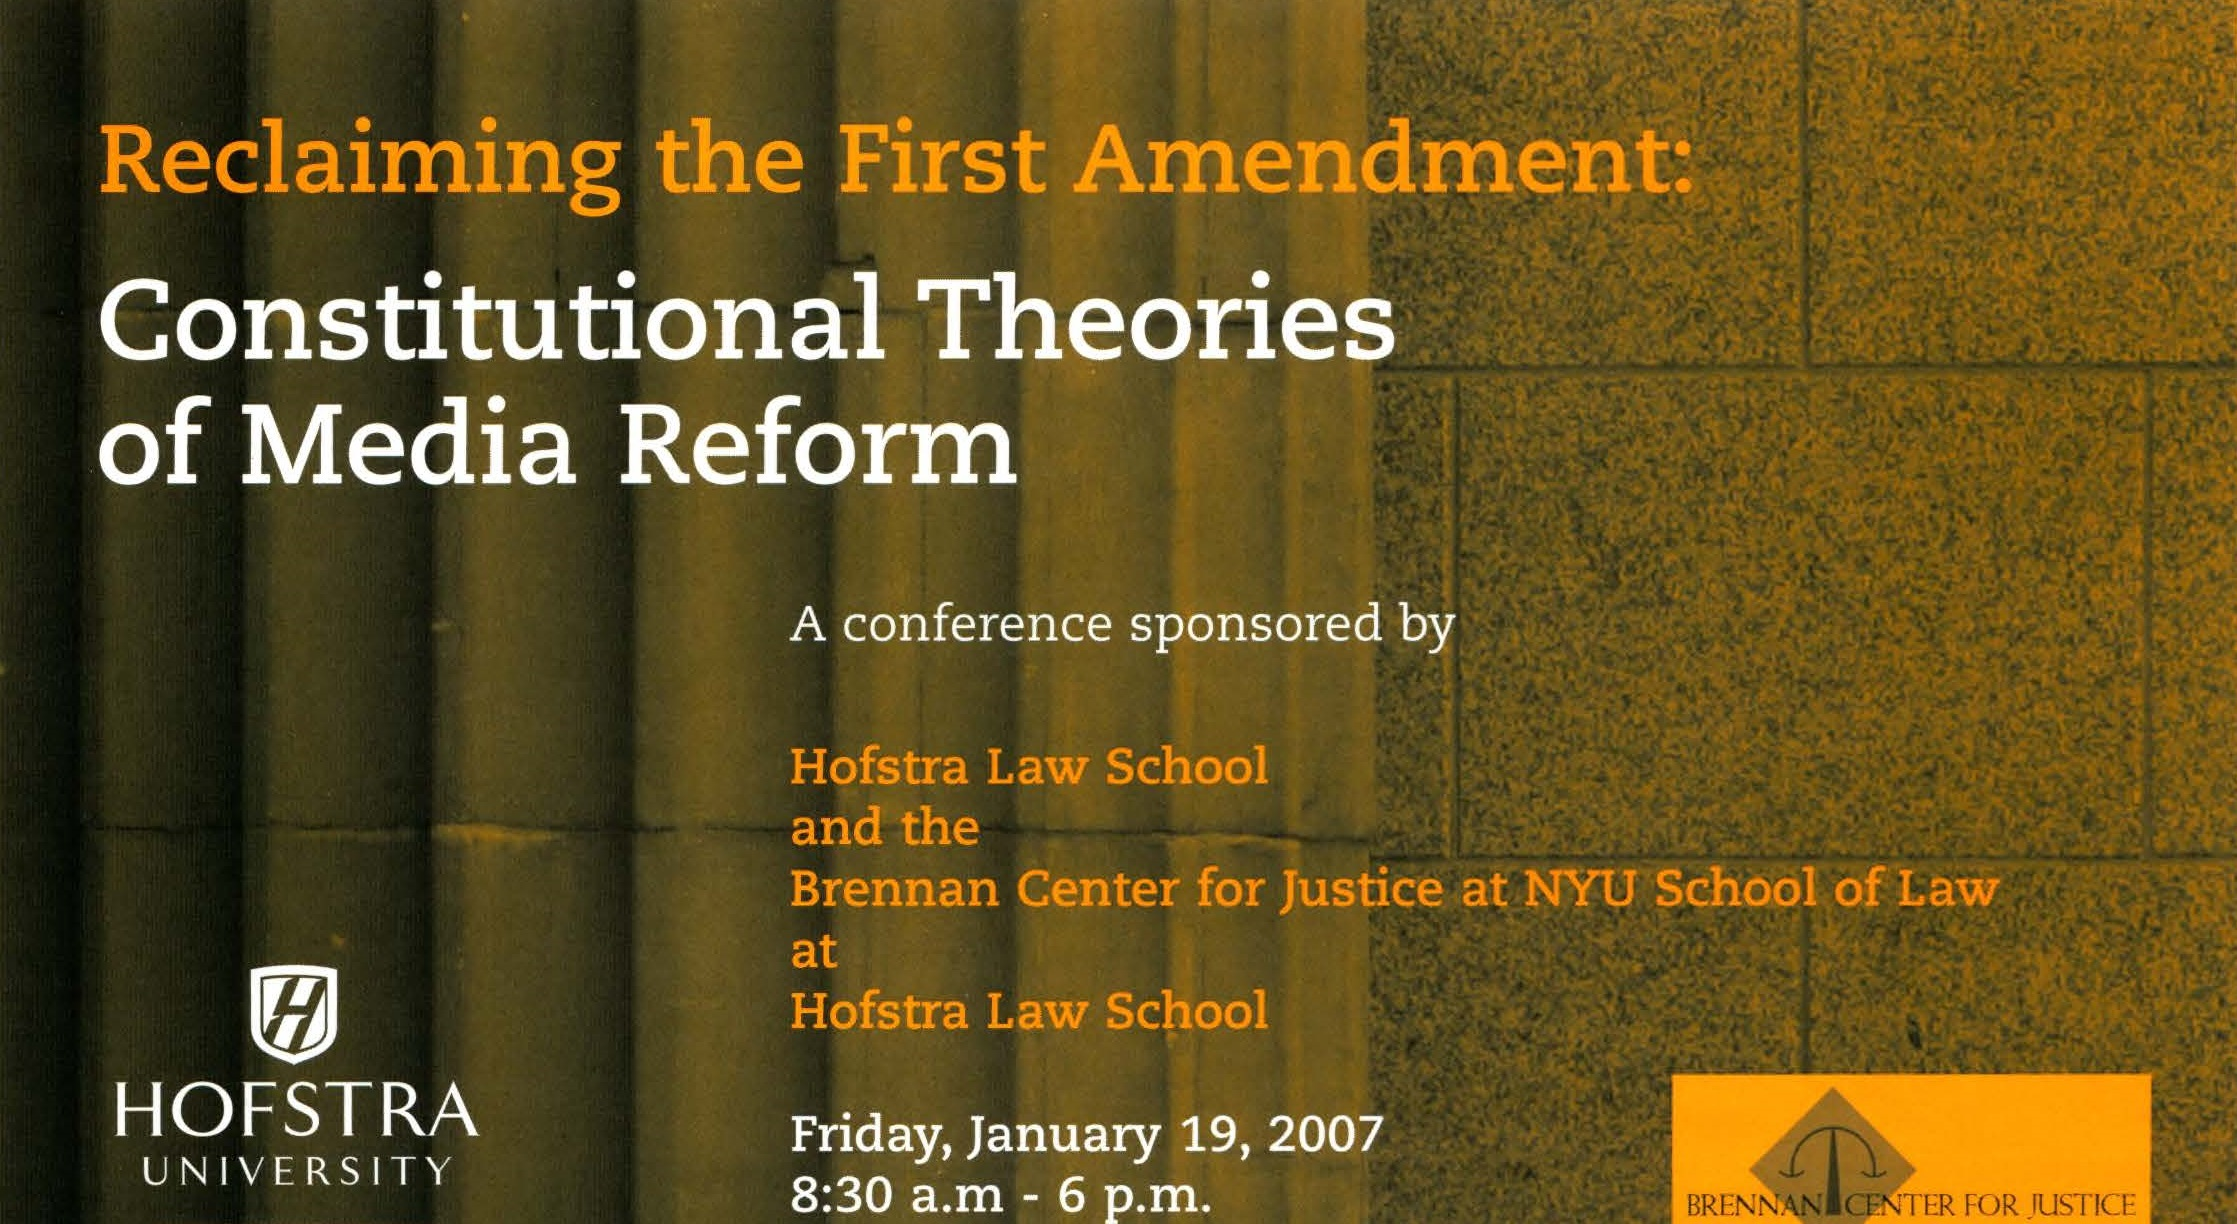 Reclaiming the First Amendment: Constitutional Theories of Media Reform (2007)